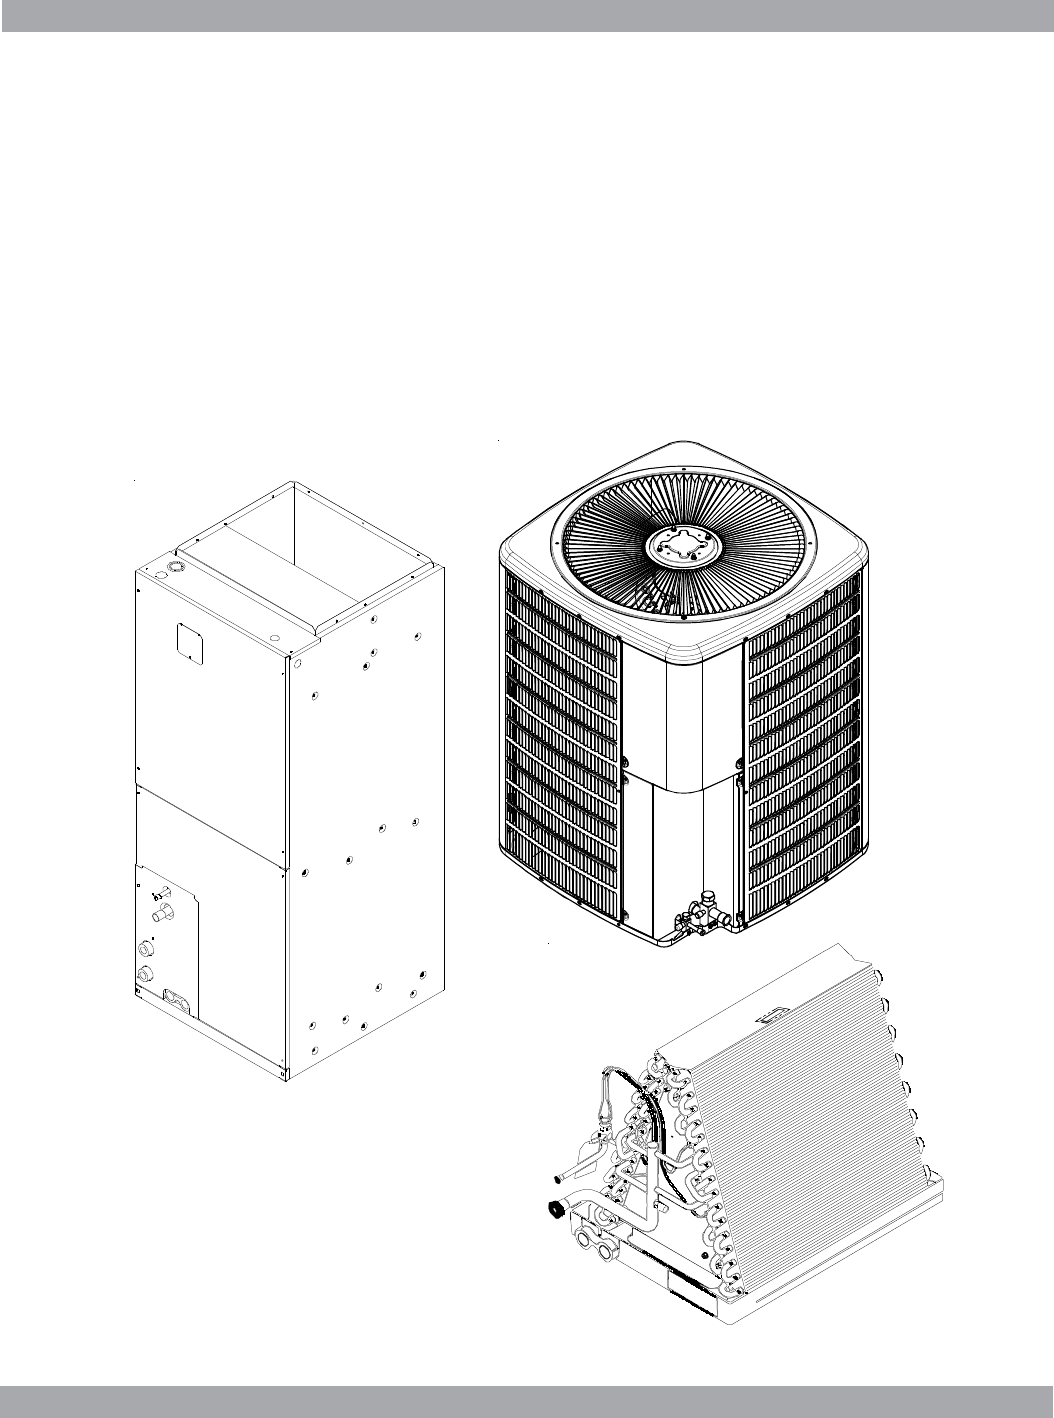 Goodman Mfg Air Conditioner RT6100004R13 User Guide